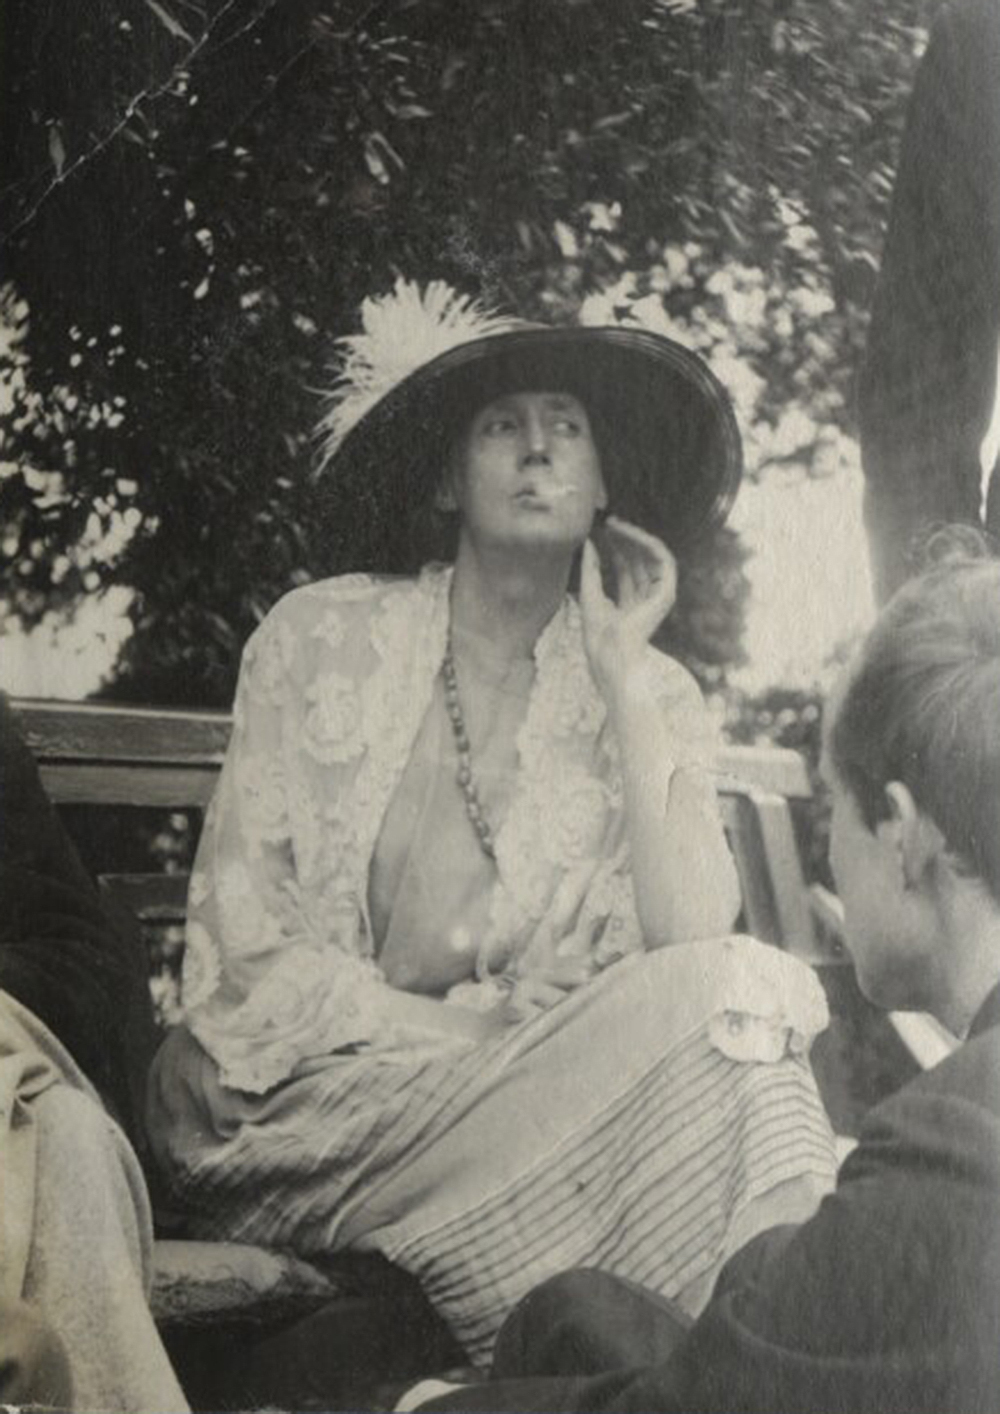 Virginia Woolf, 1923. Photograph by Ottoline Morrell. © National Portrait Gallery, London.